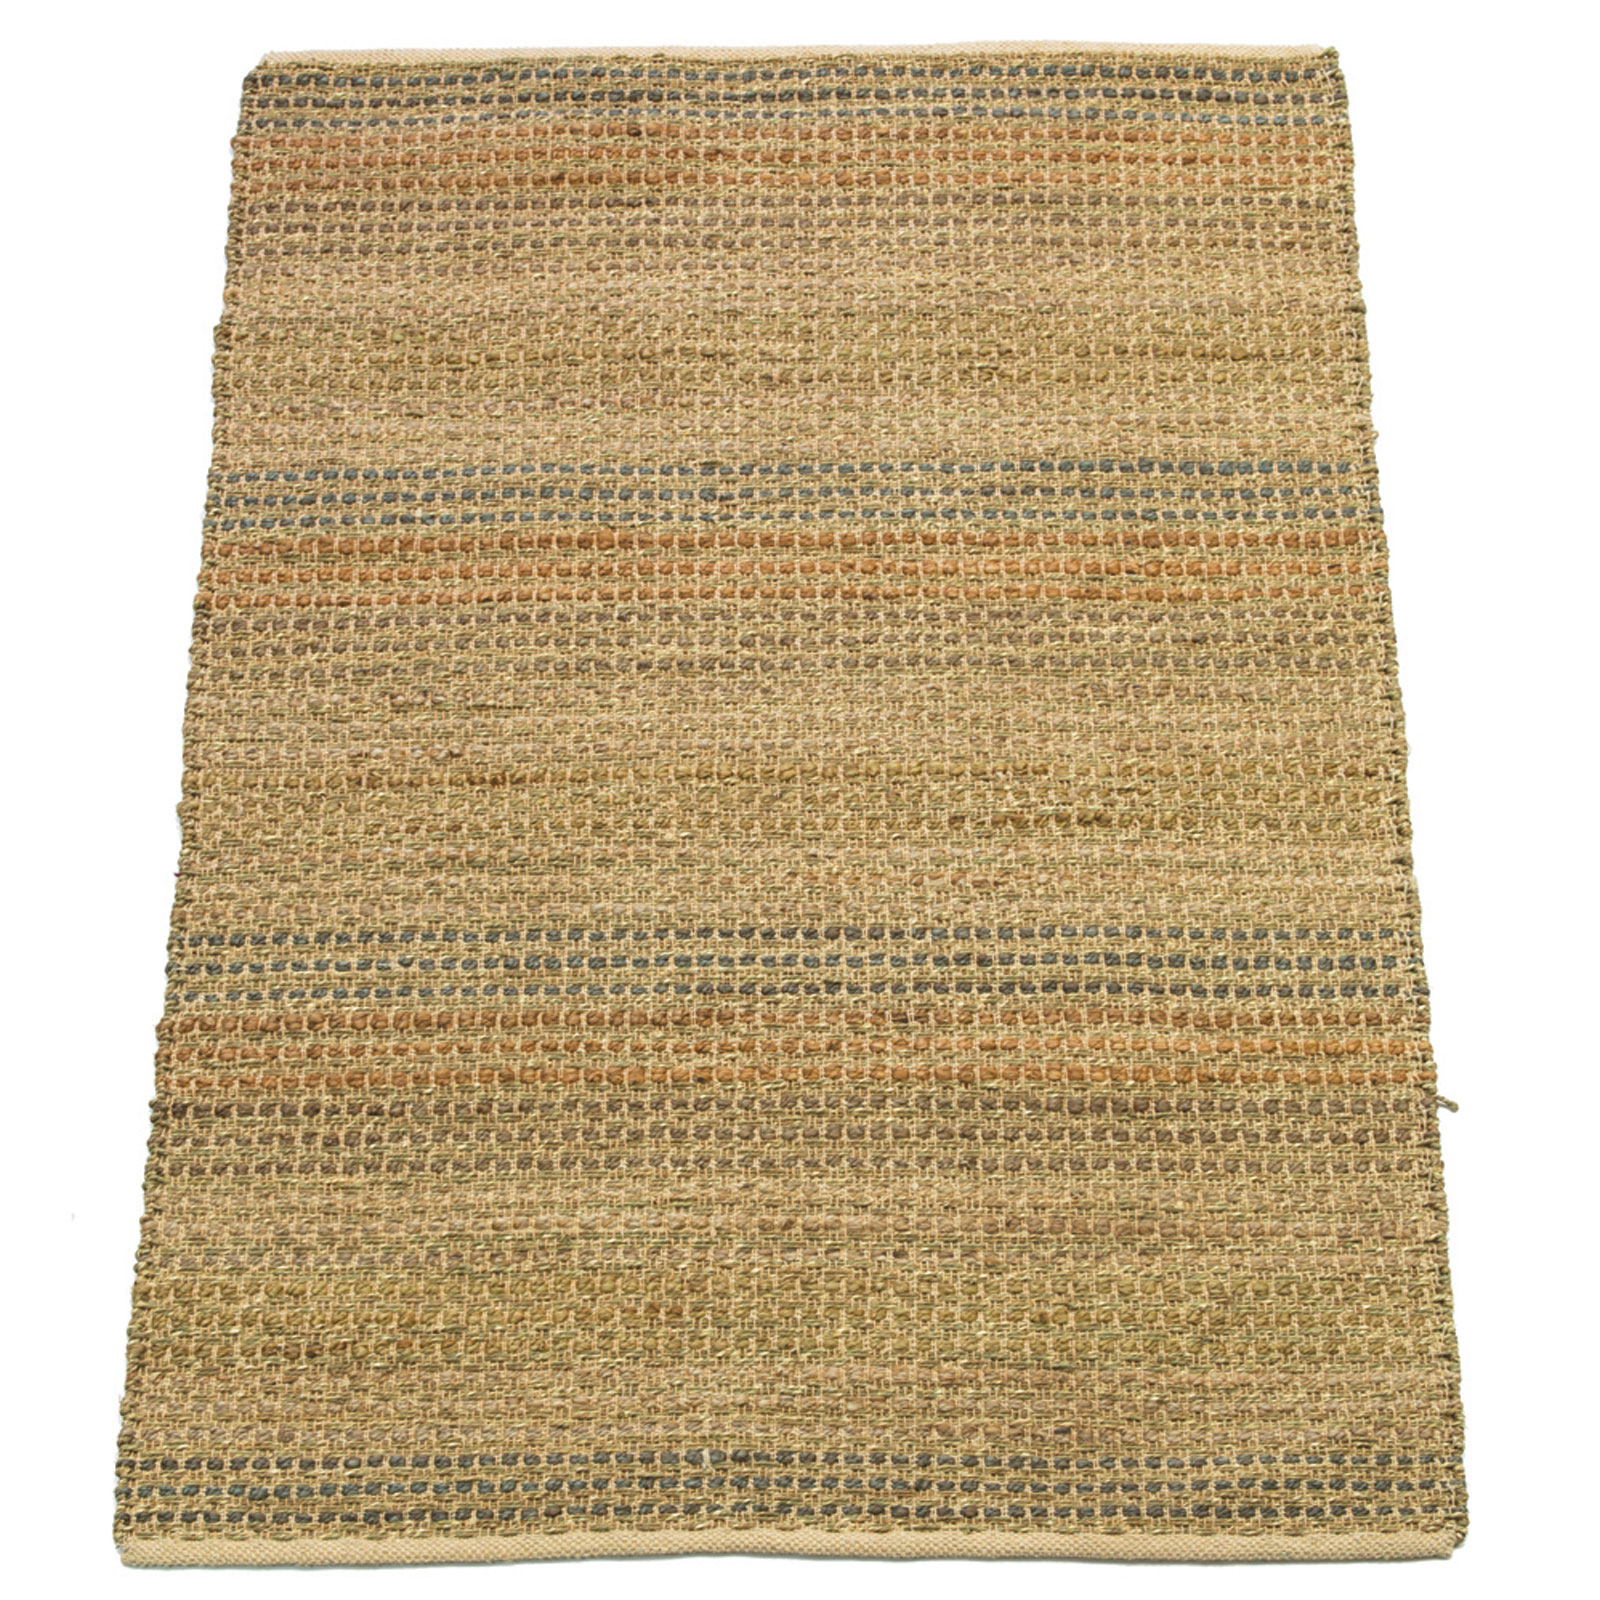 Natural Living Seagrass Rugs in Natural